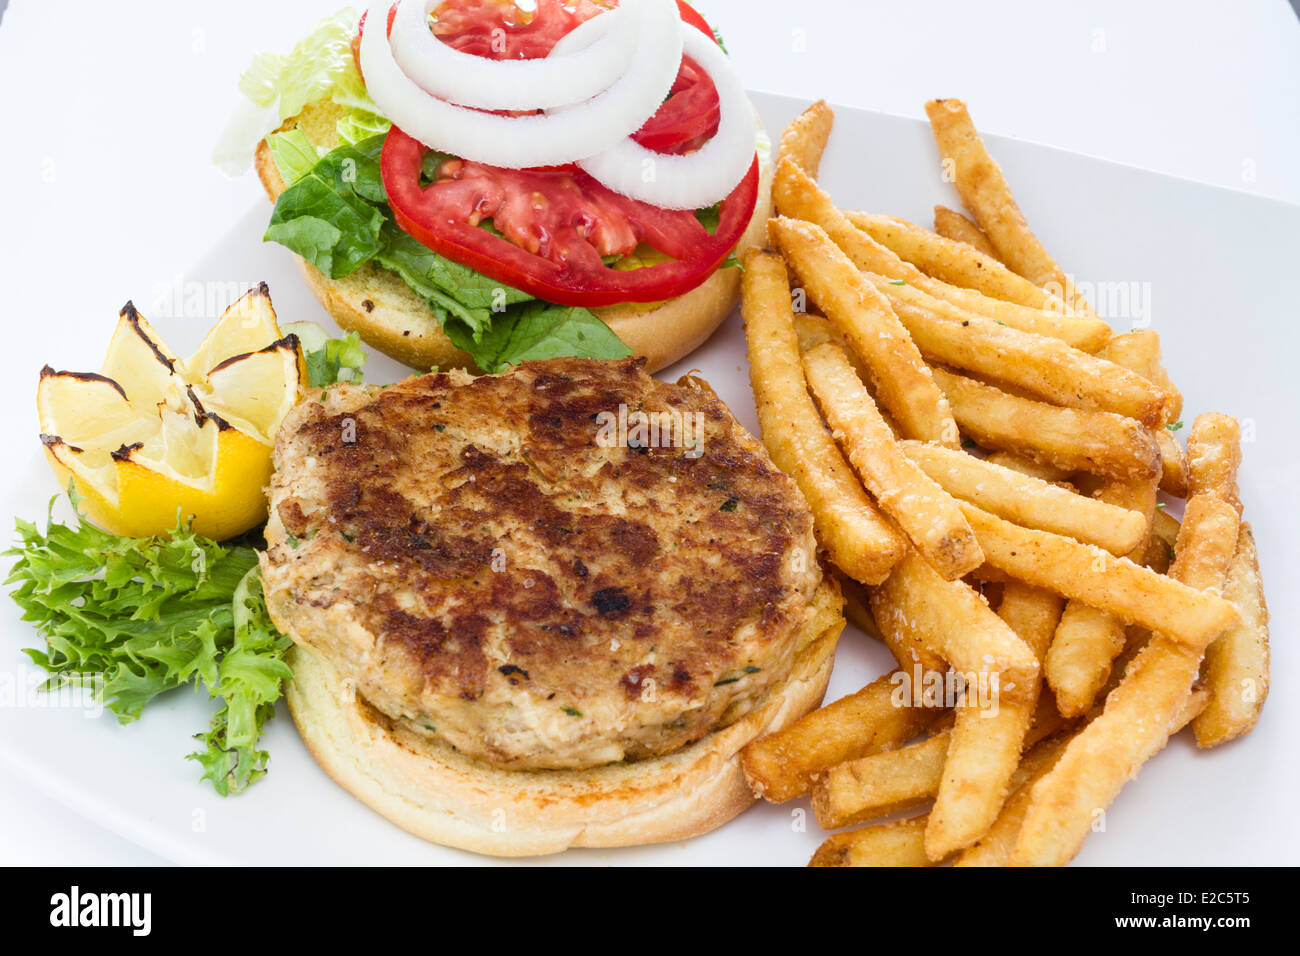 Pan fried crab cake sandwich served with a side of French fries. - Stock Image